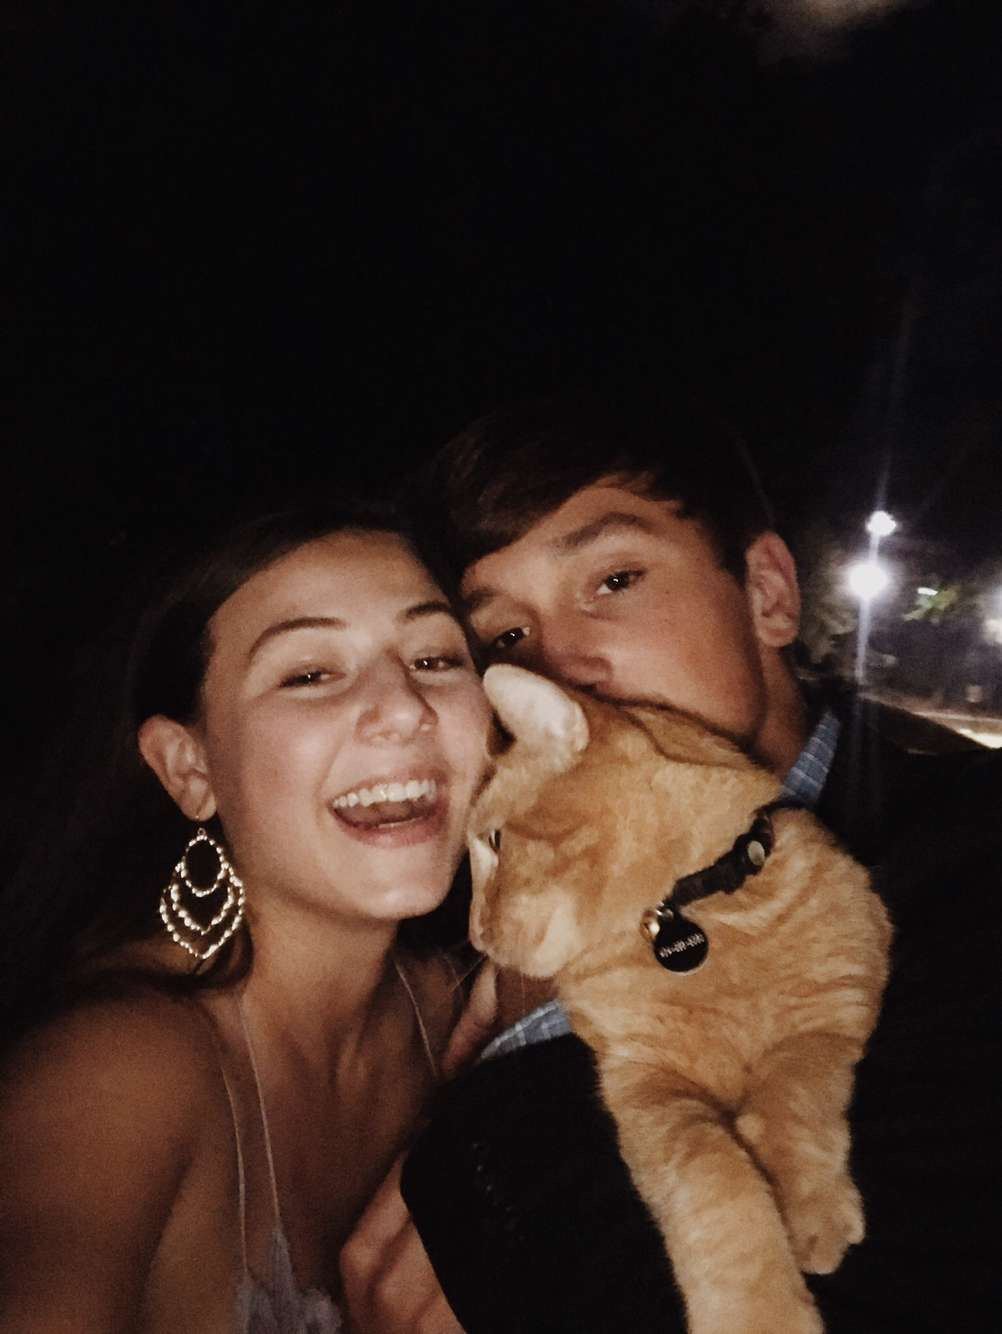 Chloe and Caden hold our local CHS cat and snap a picture on Homecoming night.